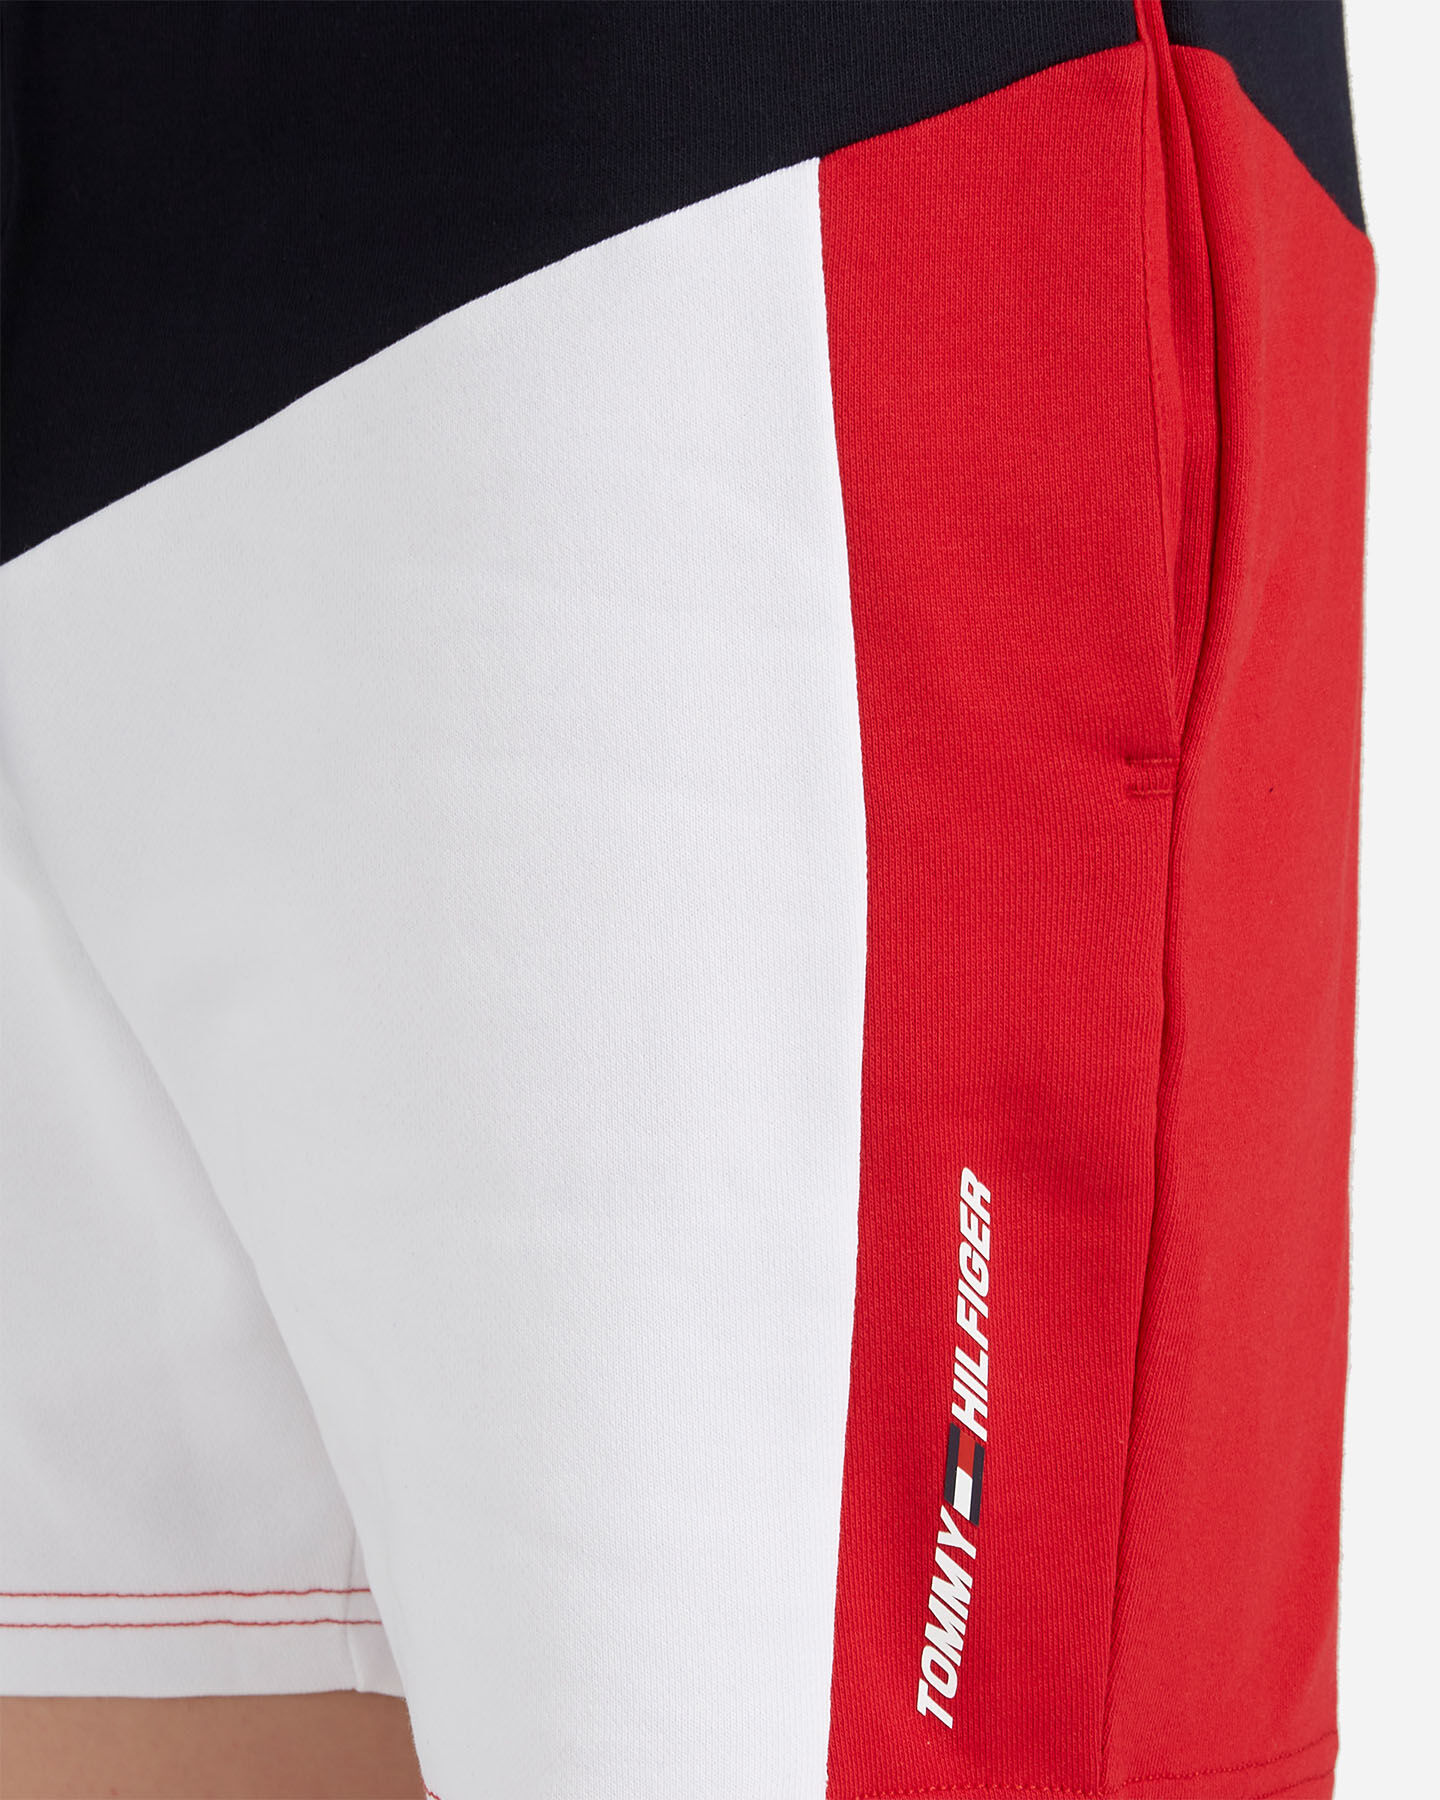 Pantaloncini TOMMY HILFIGER COLOR M S4089494 scatto 3